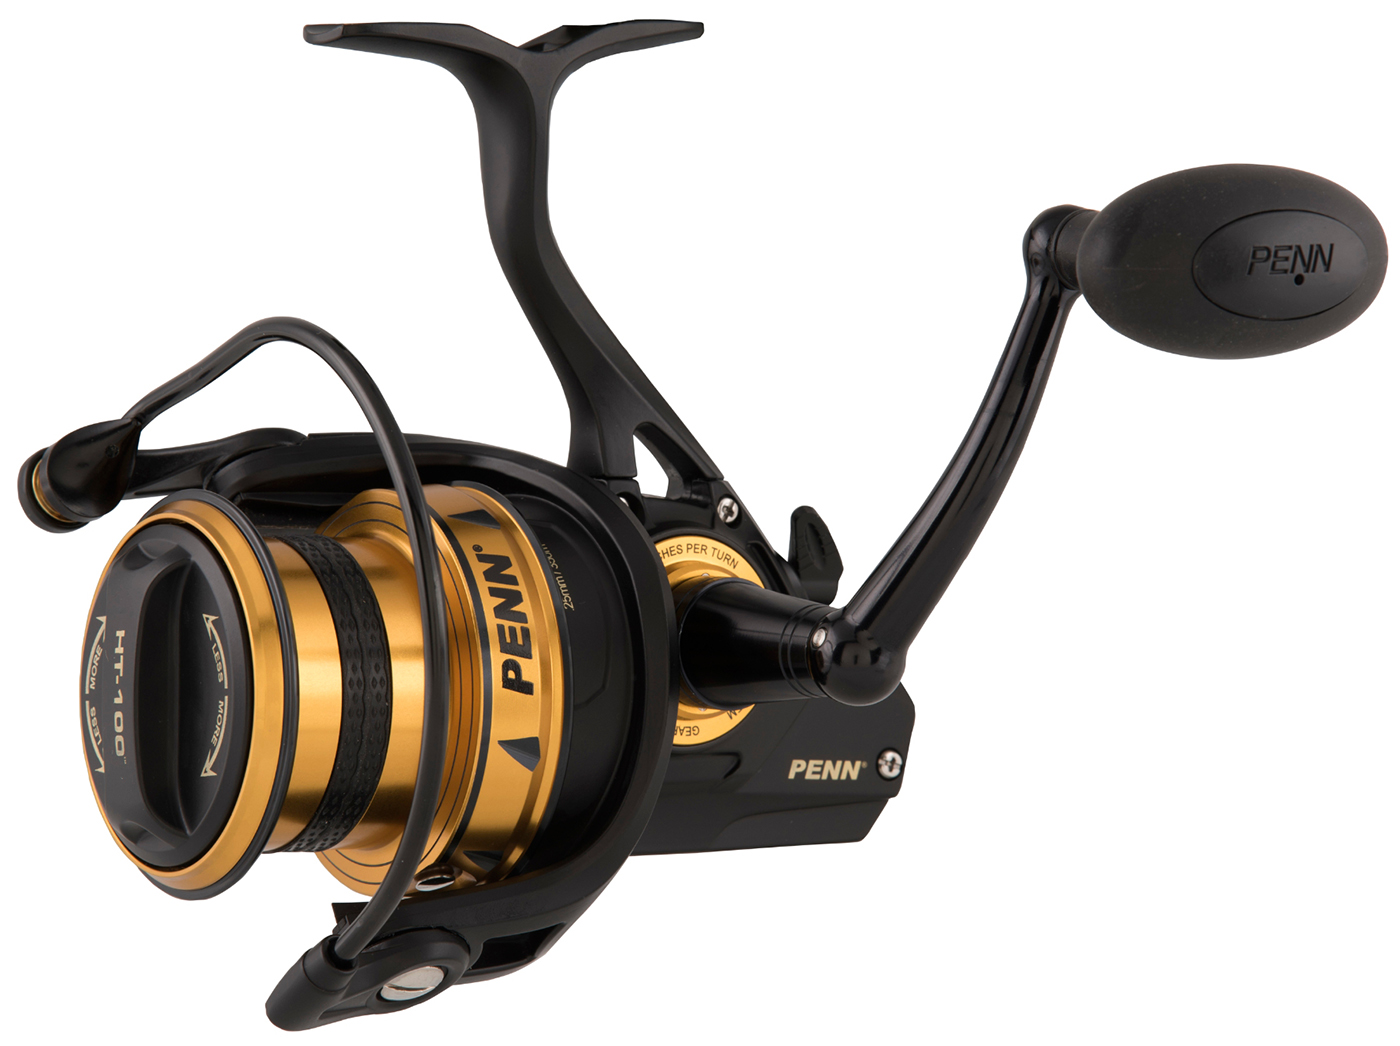 Latest Models * Penn Spinfisher SSVI Spin Fixed Spool All Sizes Sea Reel